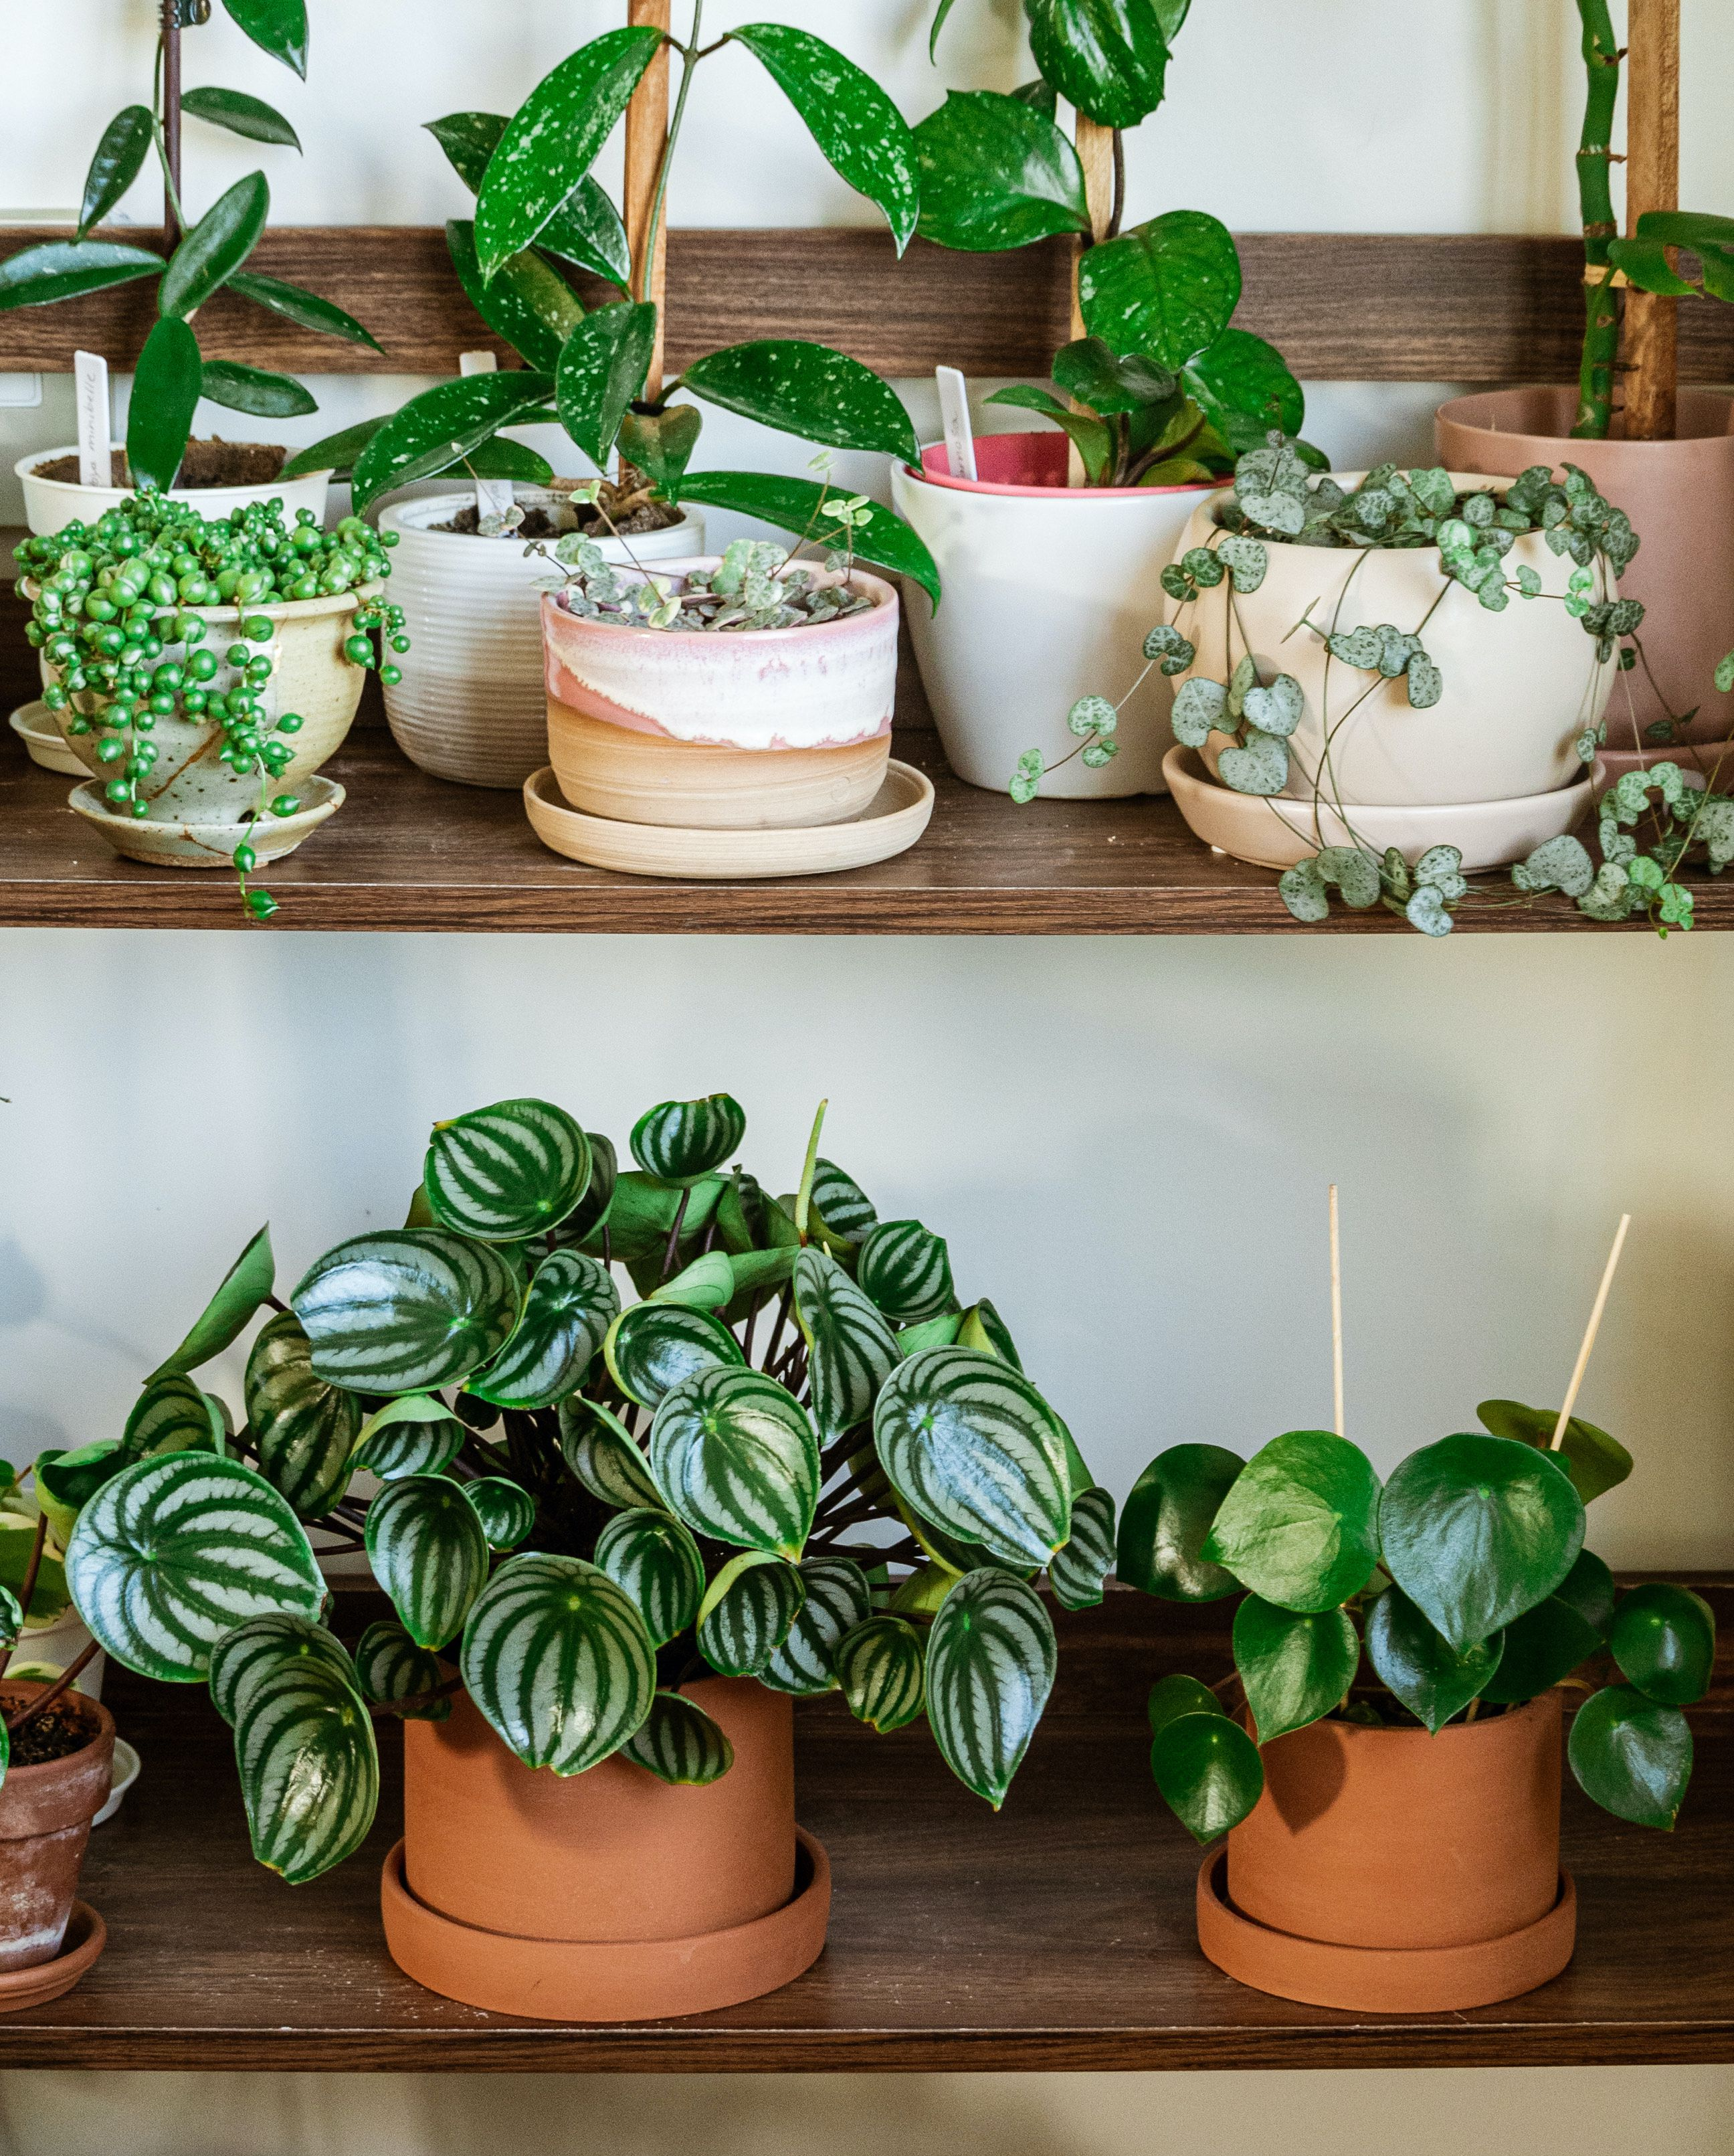 Peperomia Radiator Plants Care Growing Guide